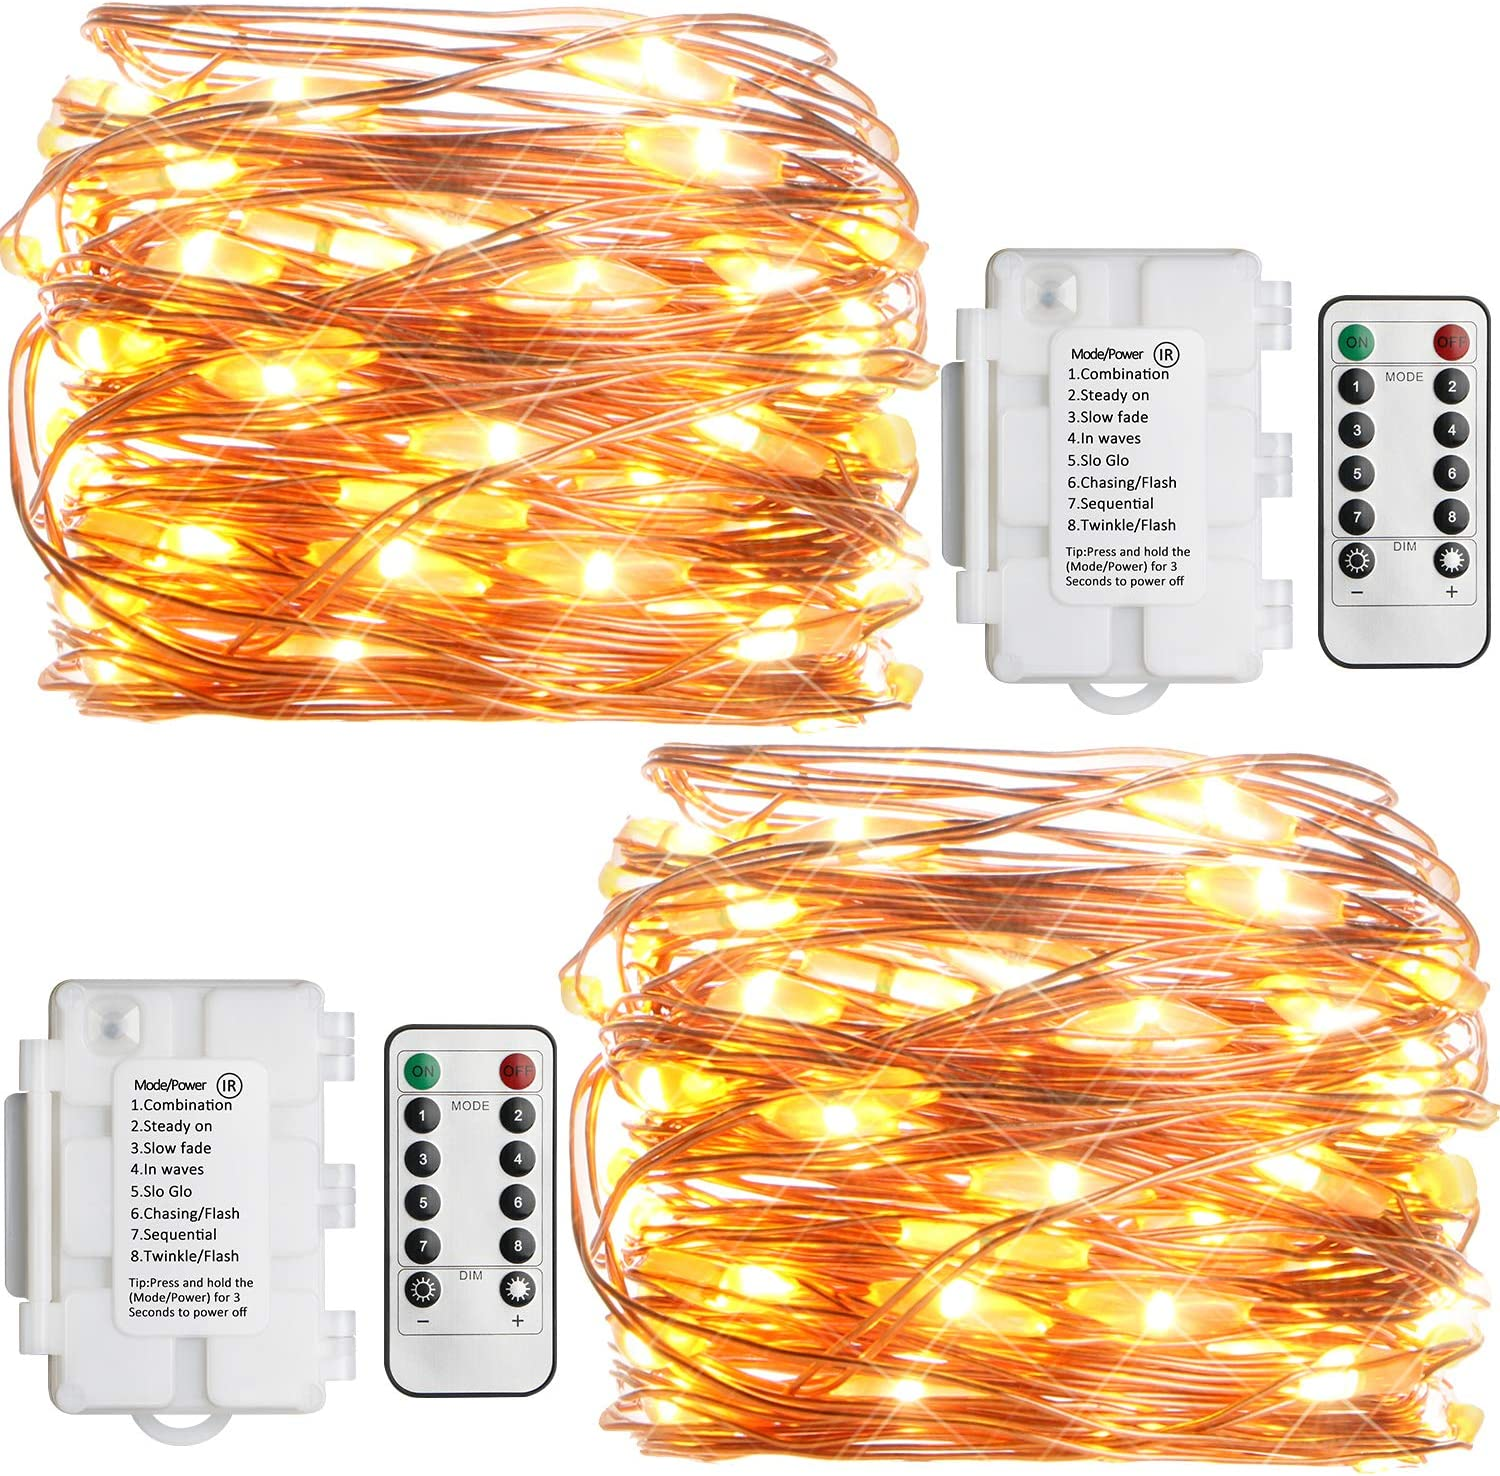 Koopower 2 Pack Outdoor String Lights 16ft 50 LEDs Battery Operated Fairy Lights 8 Mode Waterproof Copper Wire Lights for Bedroom, Garden, Easter, Xmax Decoration Warm White (Remote and Timer)